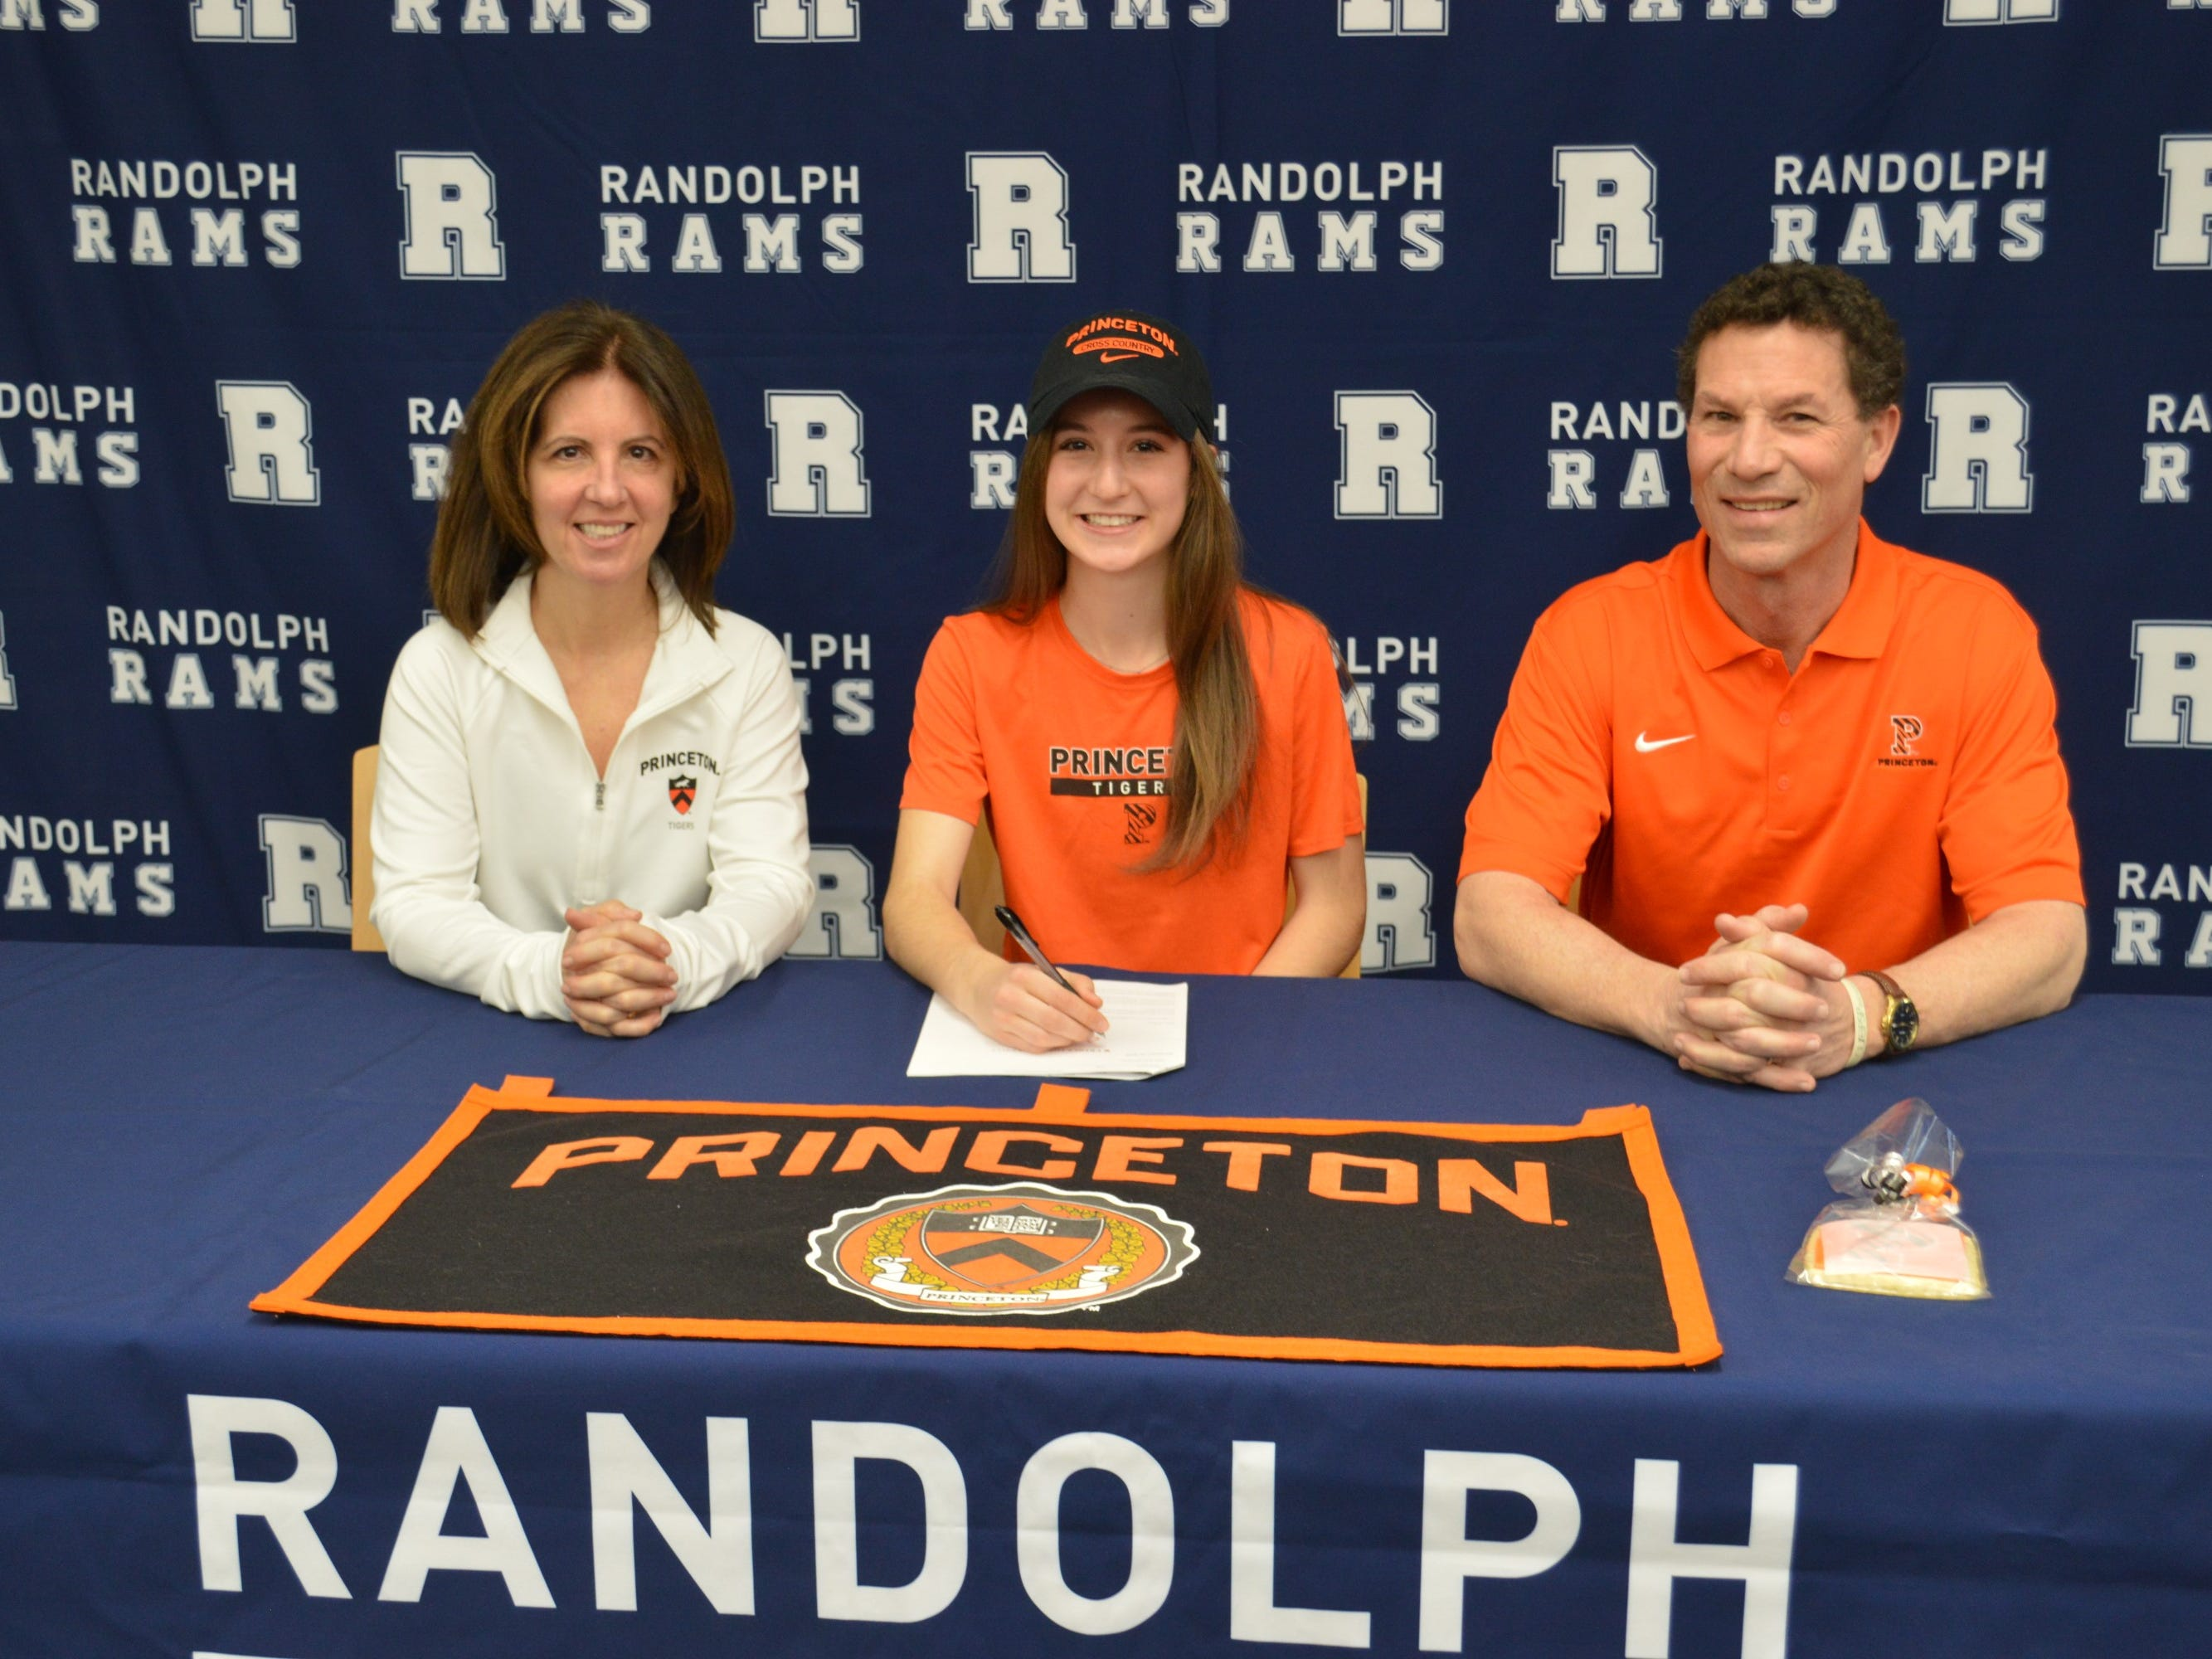 Randolph distance runner Abby Loveys plans to continue her academic and athletic career at Princeton. She committed with her parents, Karen and Randolph mayor Jim Loveys.